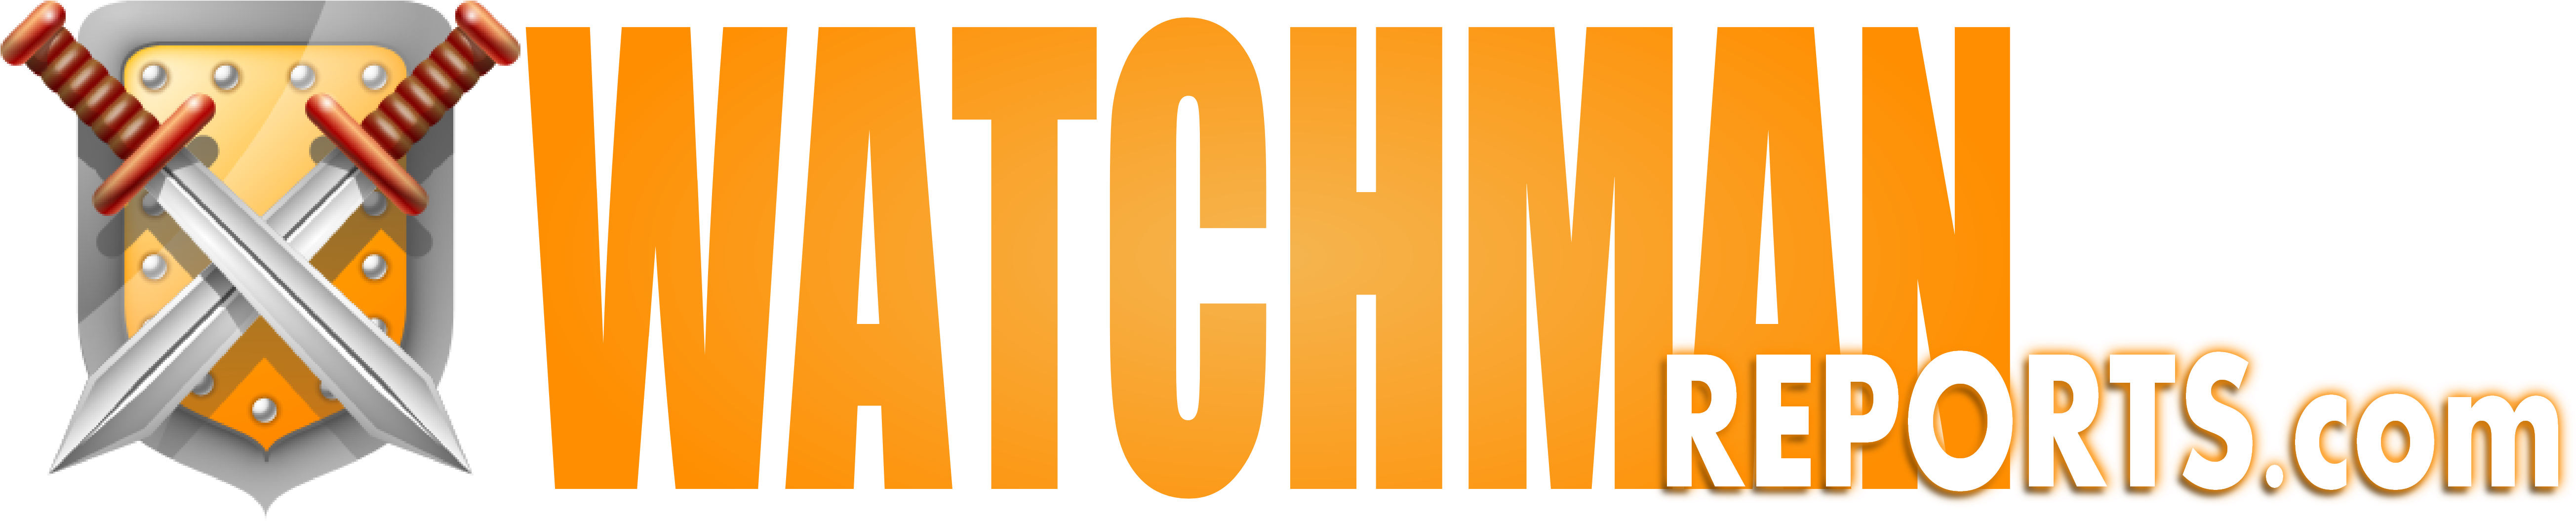 Watchman Reports (5265x1190), Png Download